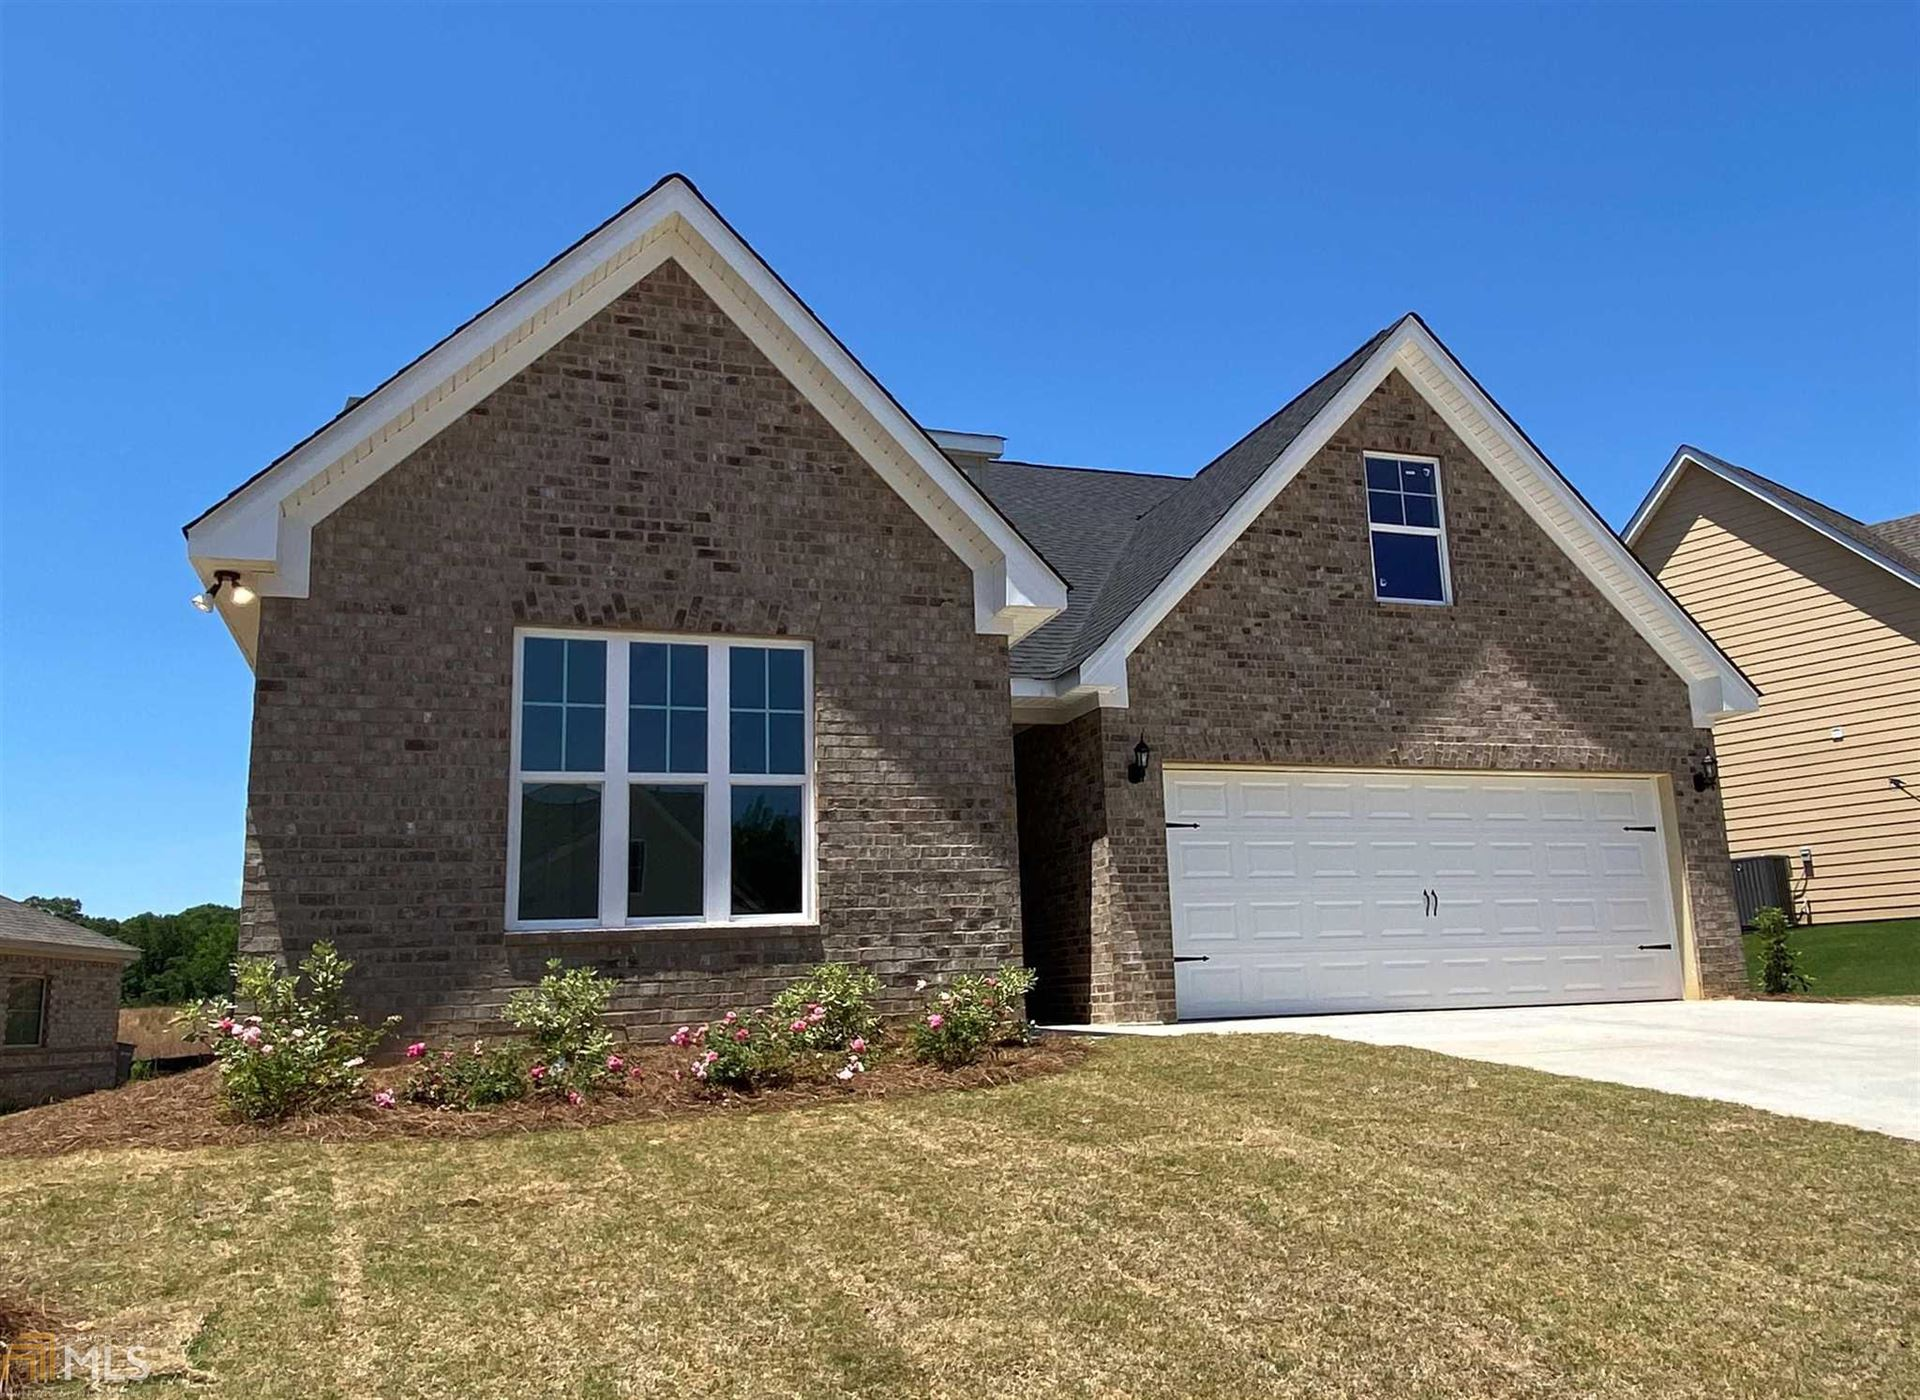 512 Lago Ct, LaGrange, GA 30241 - #: 8910766